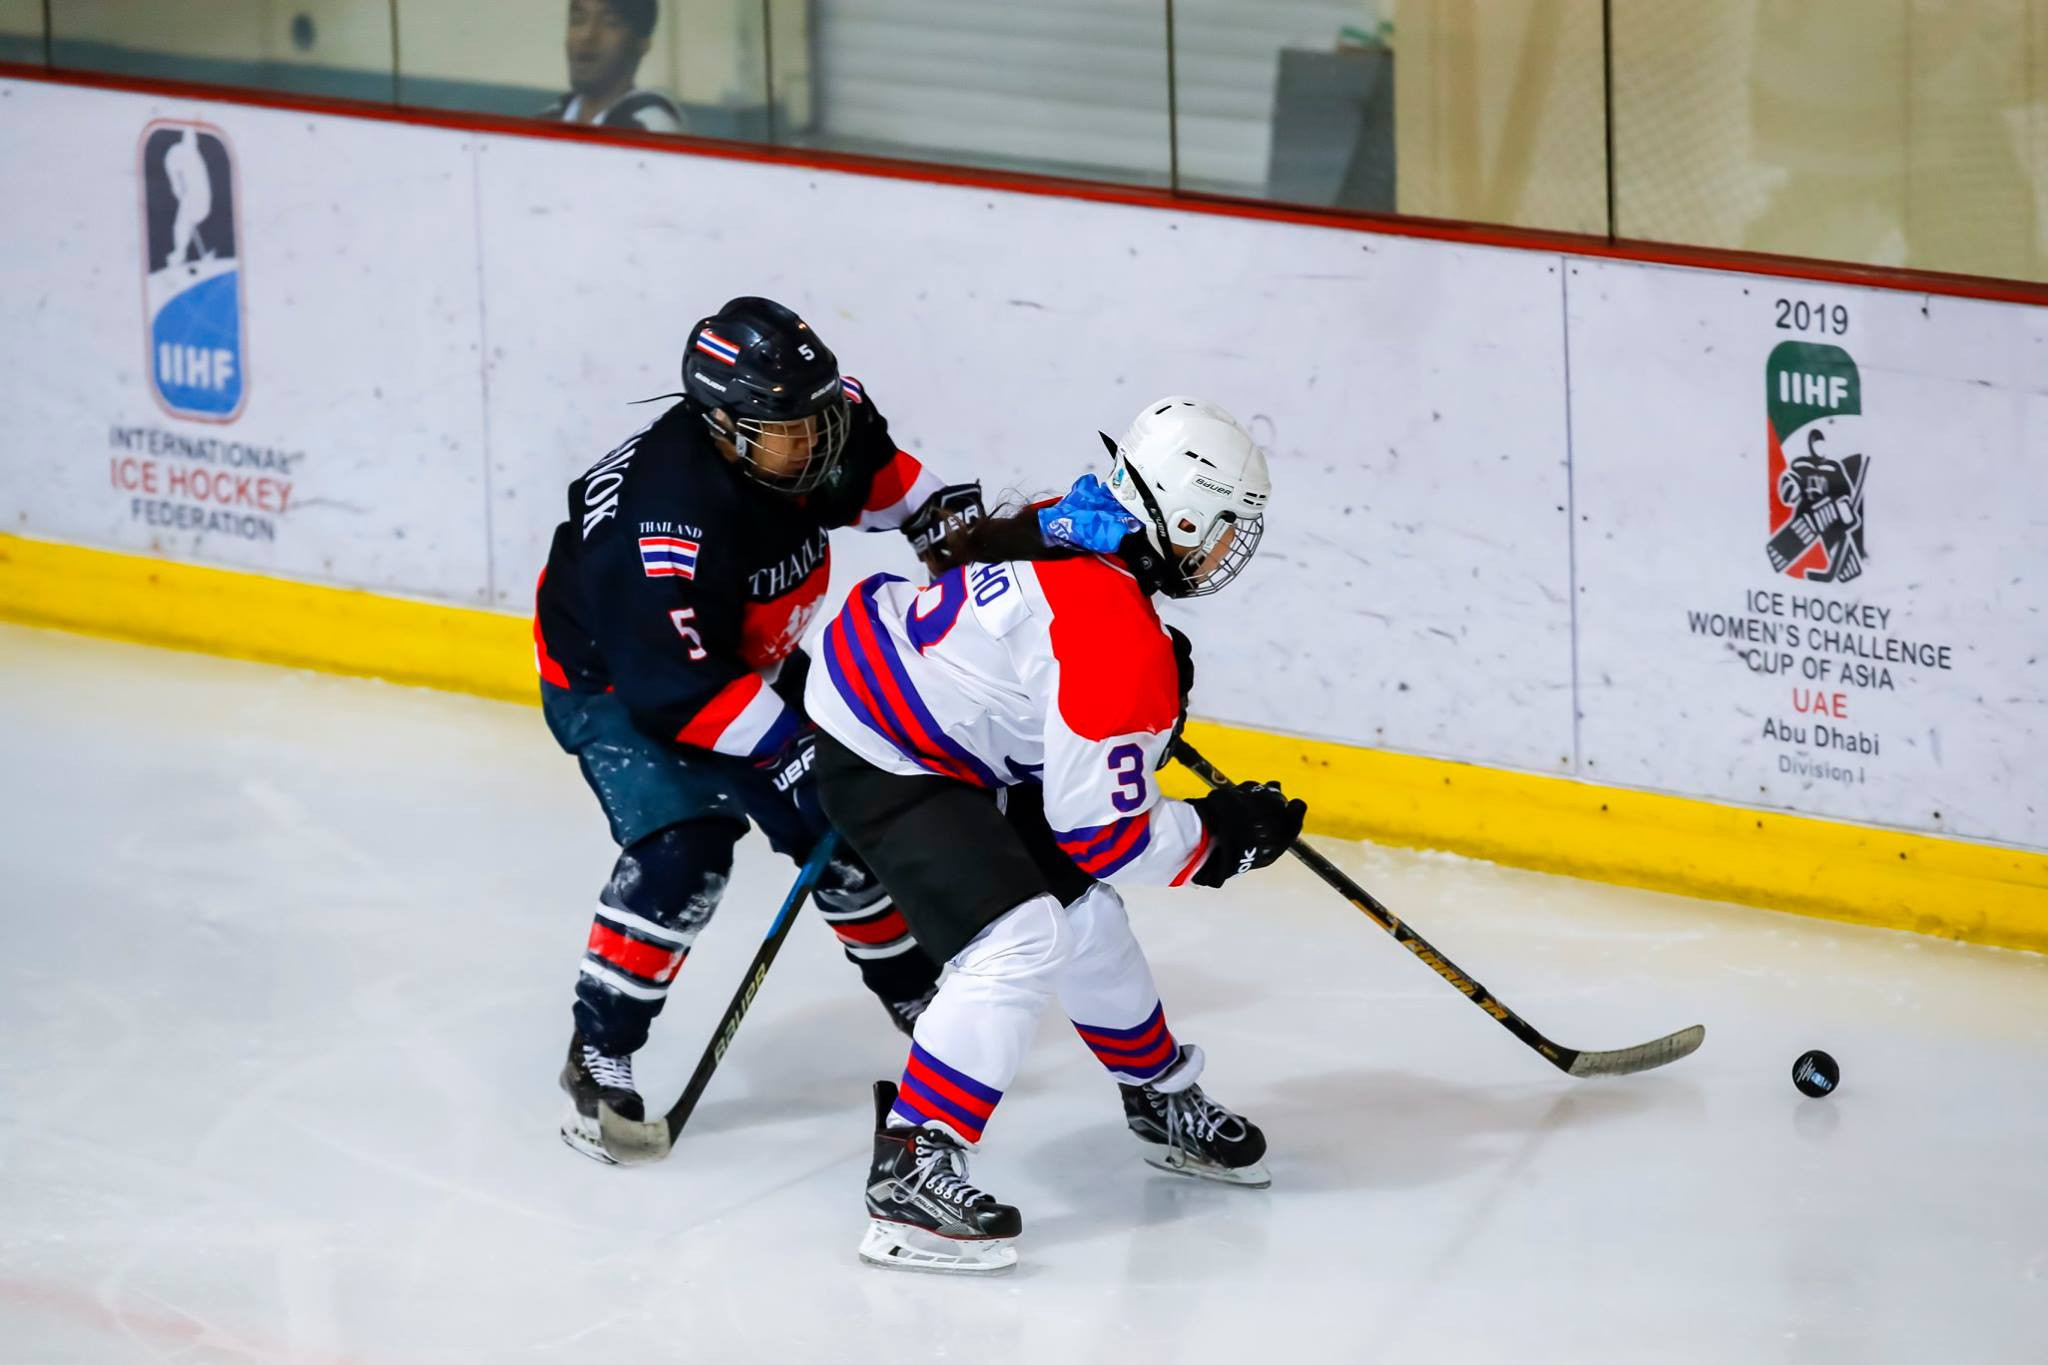 Thailand thrash Singapore to top IIHF Women's Challenge Cup of Asia standings